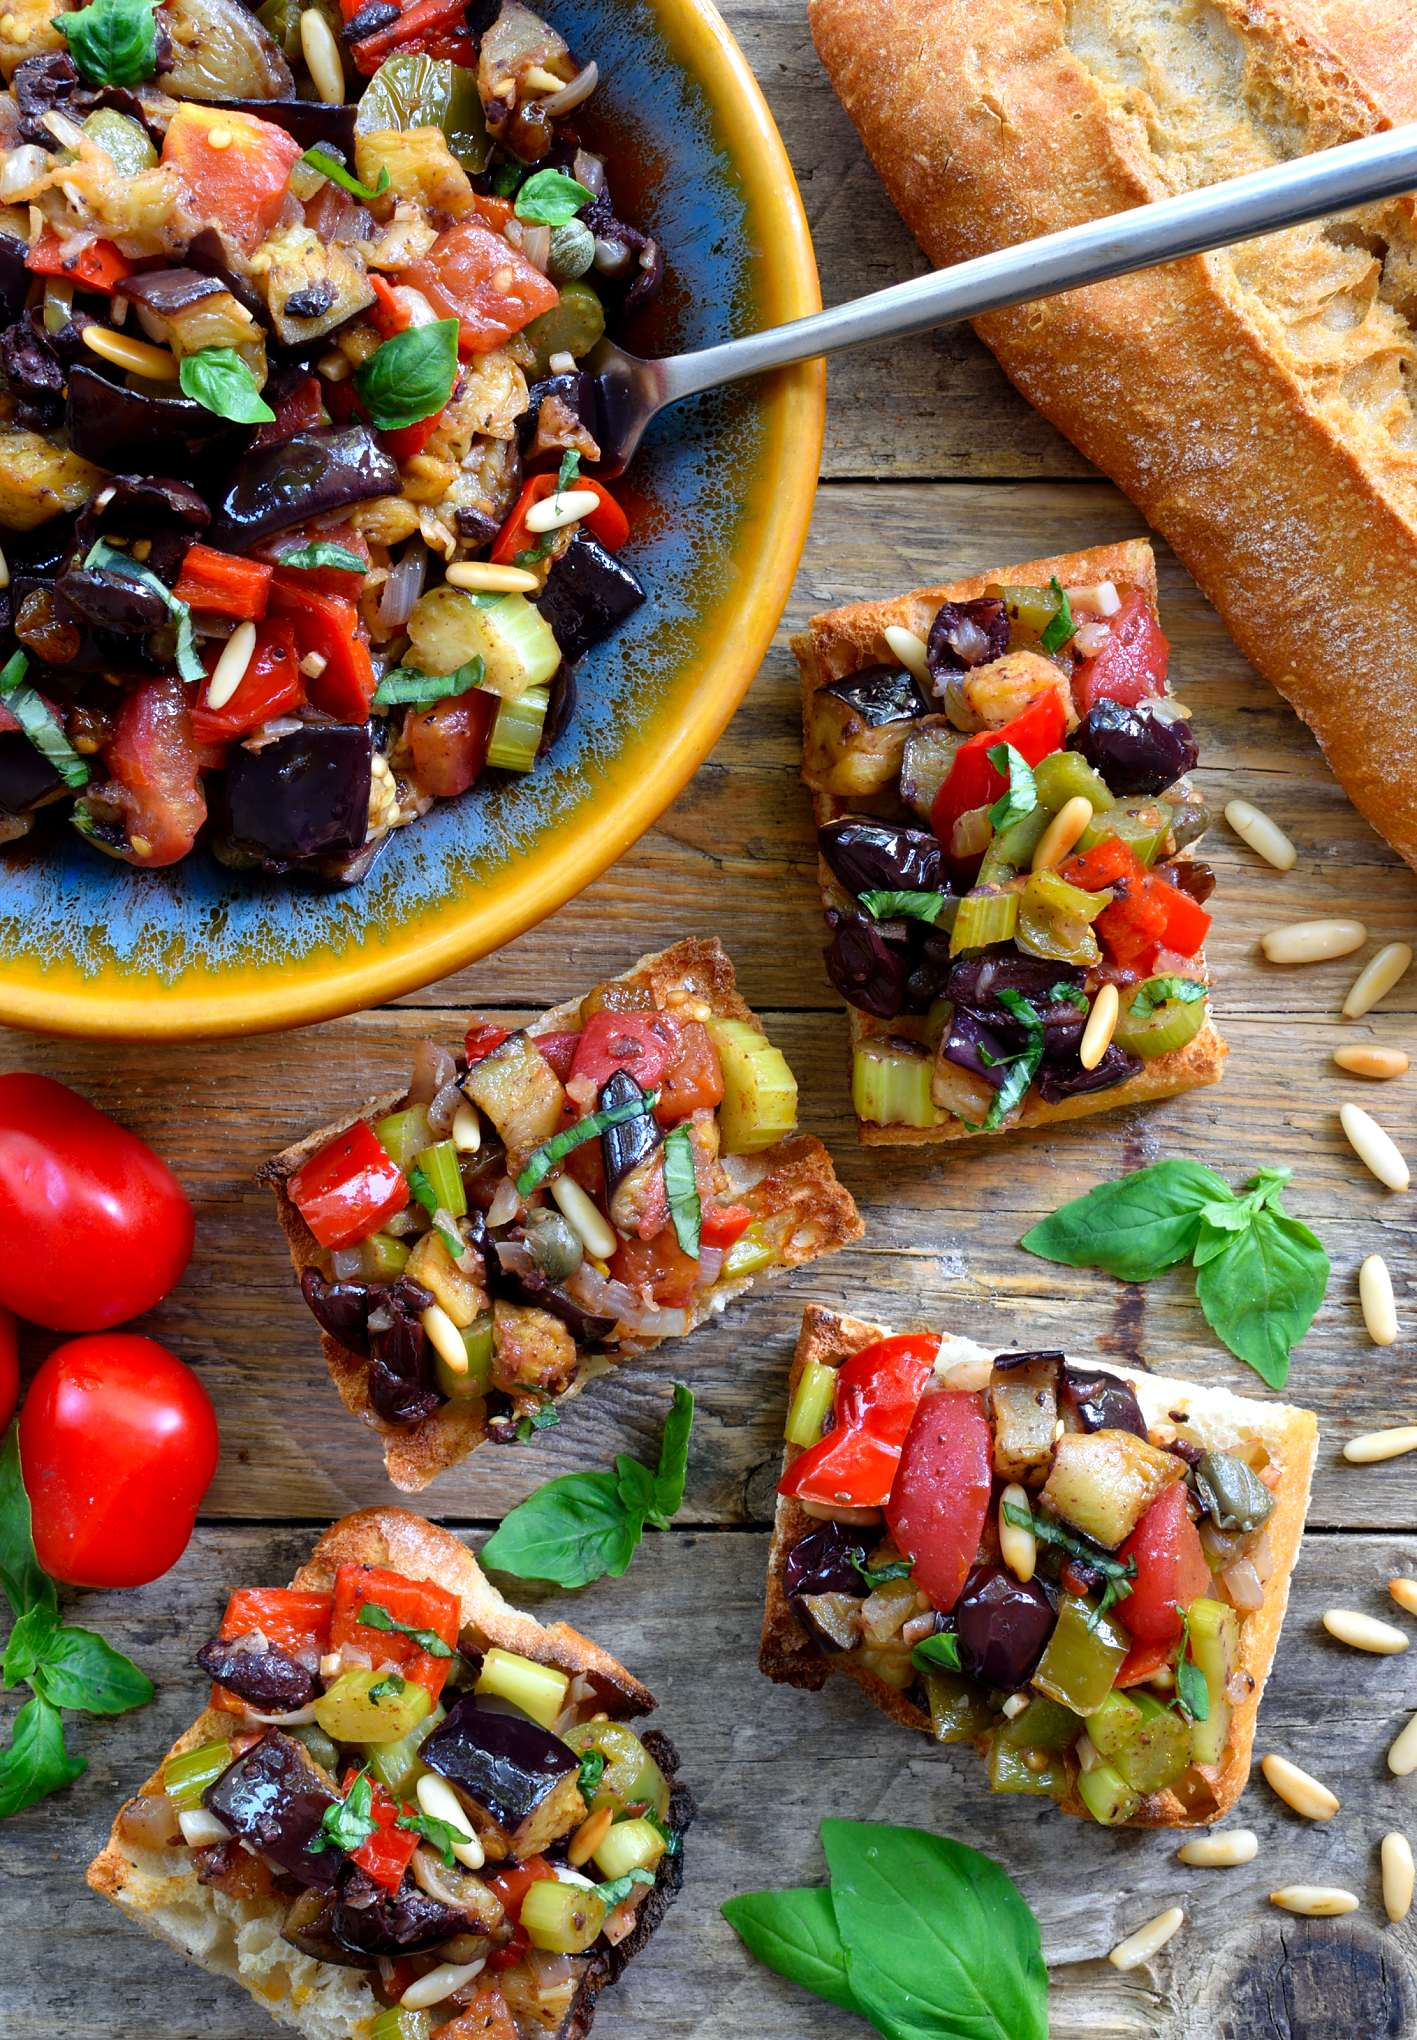 Caponata is a delicious sweet and sour eggplant antipasto that can be used in a variety of different ways. A great dish for the summer months when fresh eggplant, peppers and tomatoes are at their best, caponata is perfect to serve as a vegan appetizer, side or even main dish.